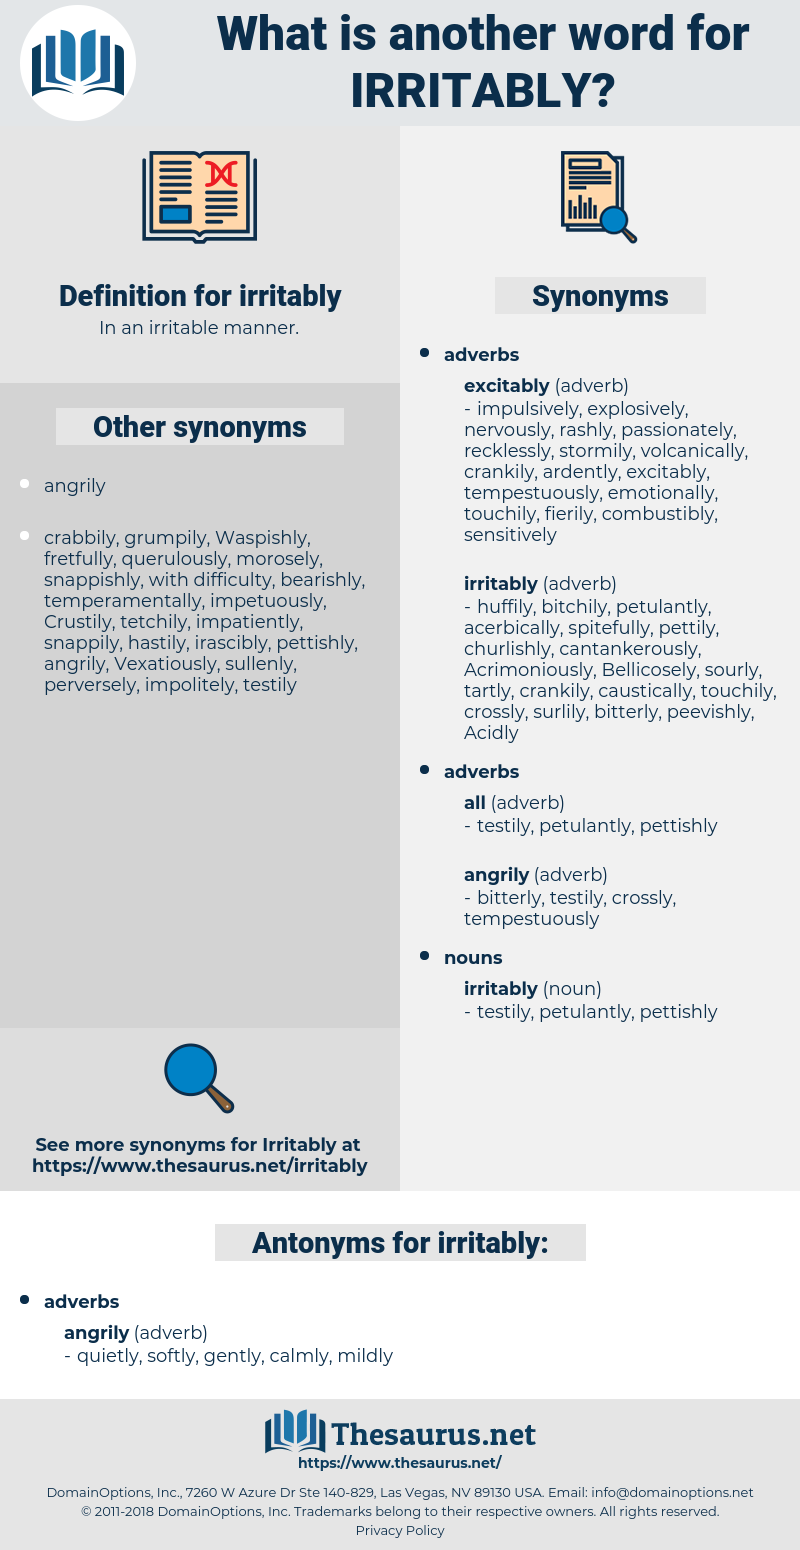 irritably, synonym irritably, another word for irritably, words like irritably, thesaurus irritably